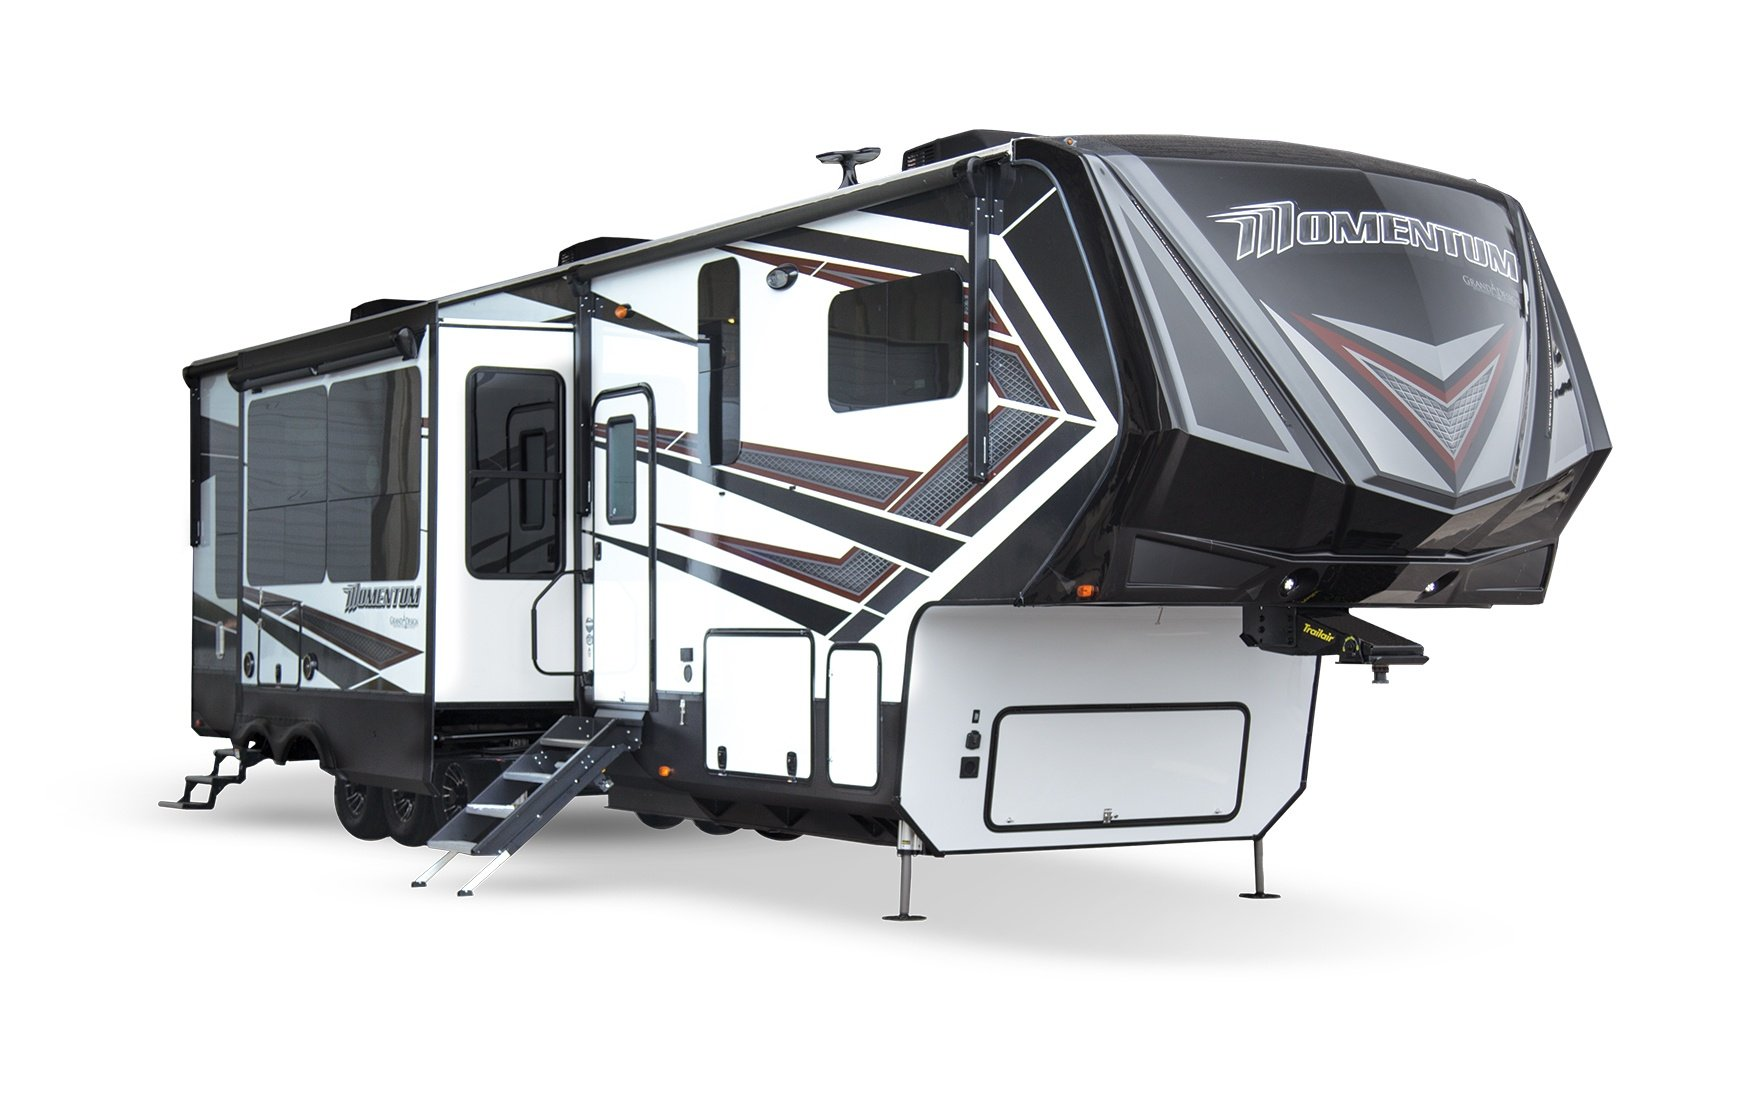 Grand Design Momentum Fifth Wheel Toy Hauler Exterior